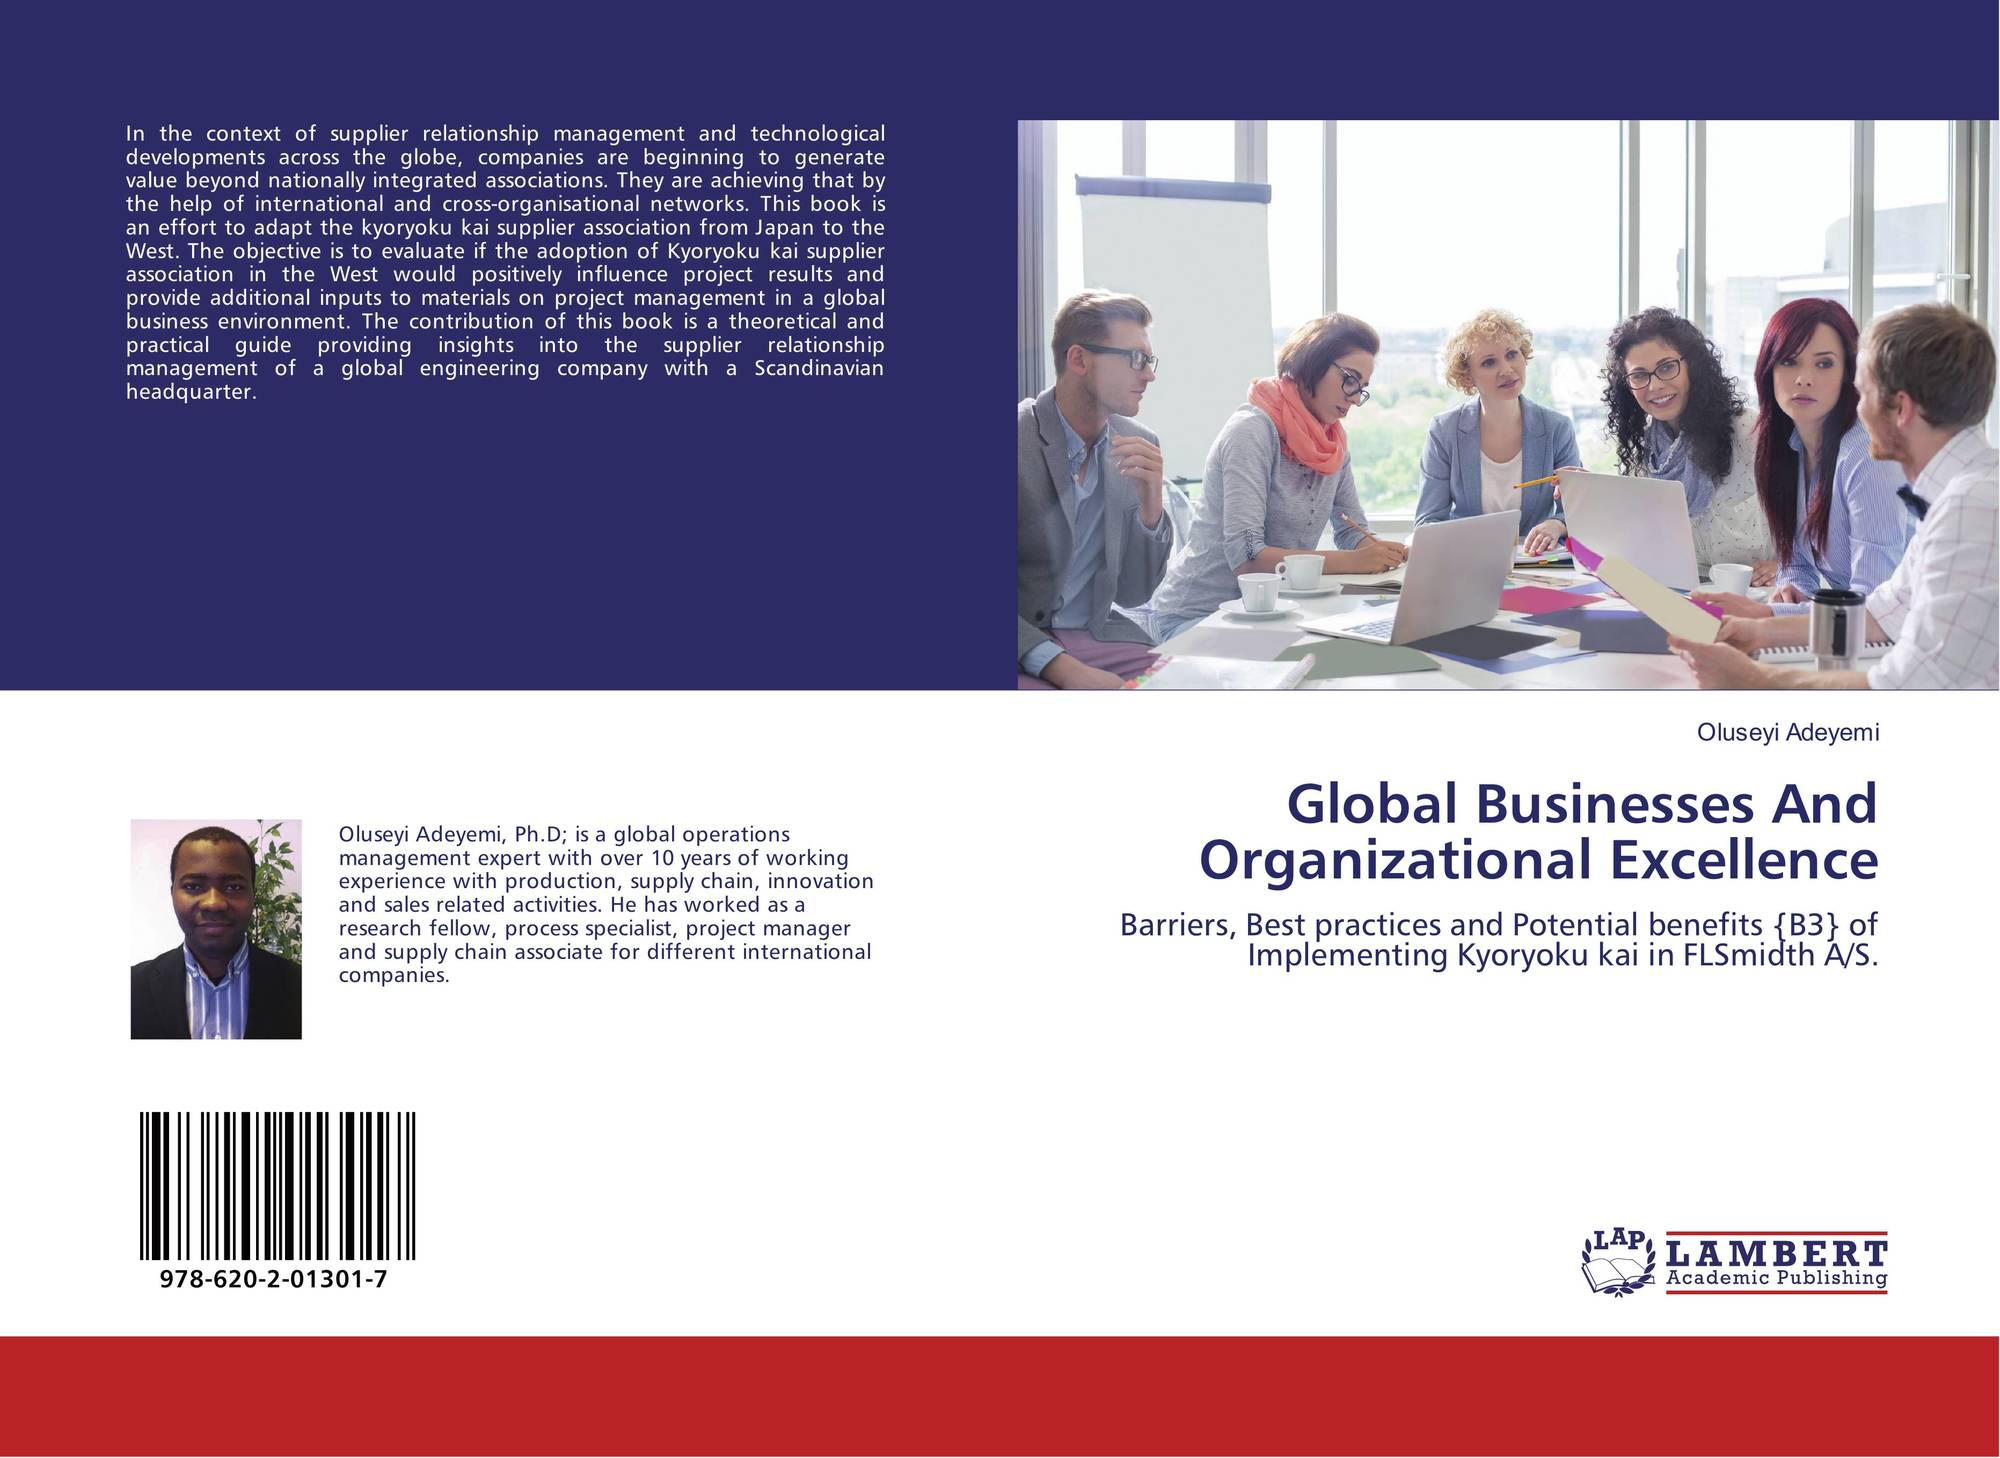 globalization and business organizations Politically, globalization has shifted countries' political activities to the global level through intergovernmental organizations like the united nations and the world trade organization with.